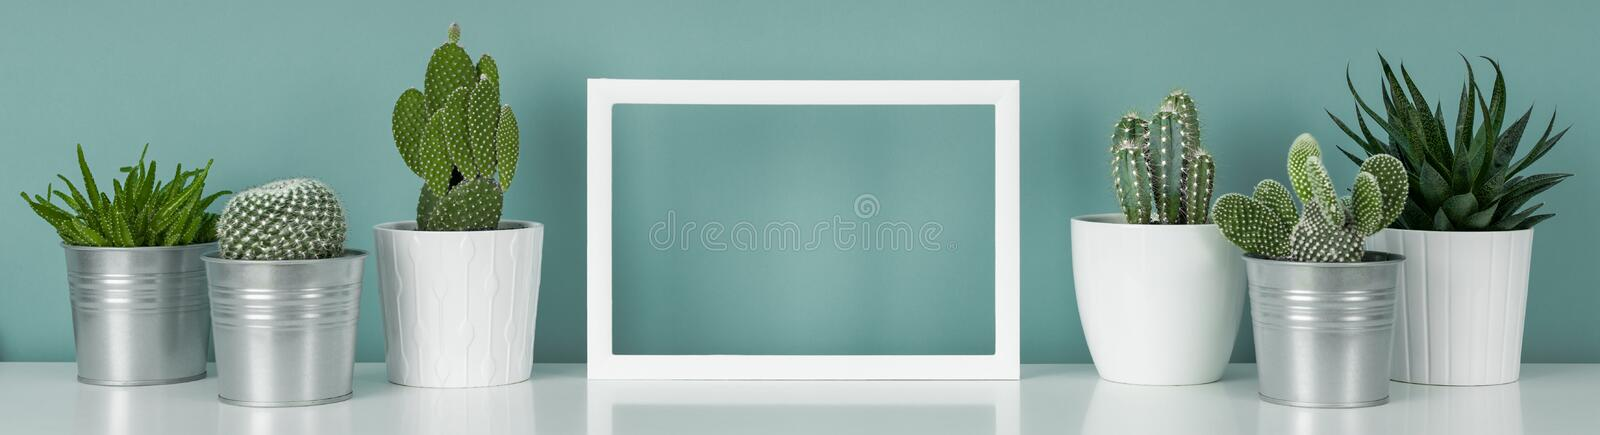 Potted house plants on white shelf against turquoise colored wall and picture frame mock up banner. royalty free stock image